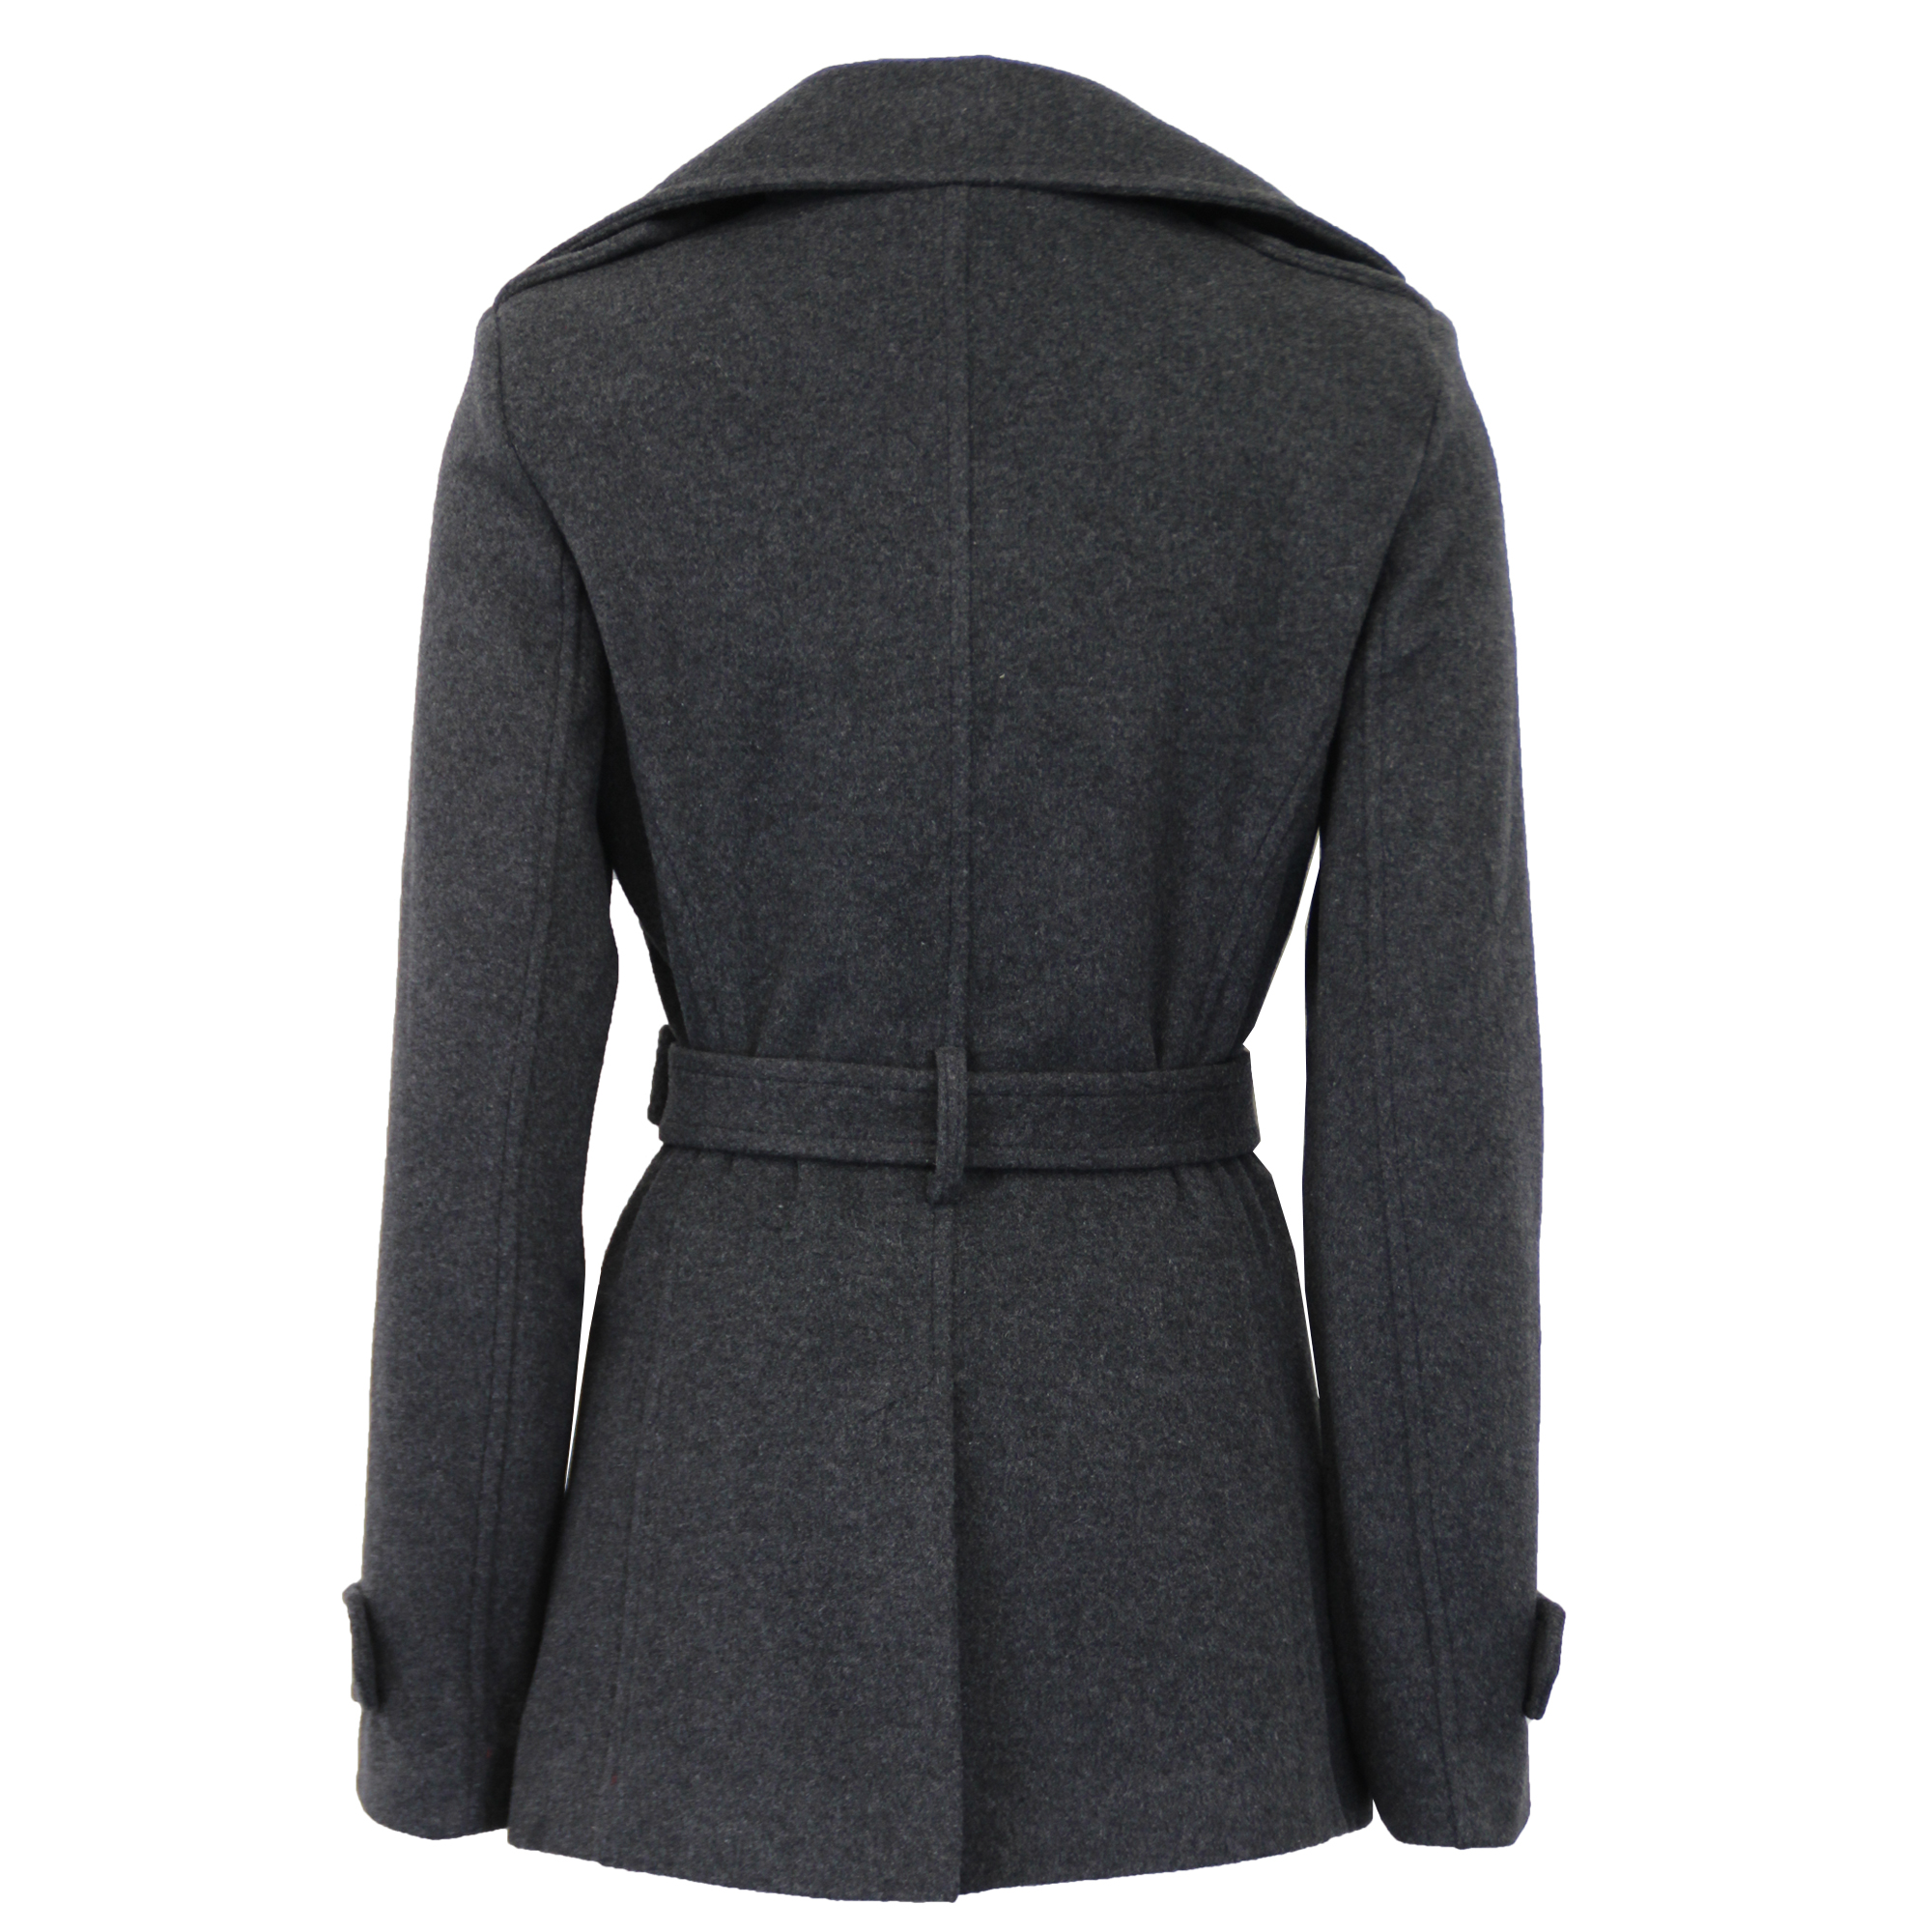 Ladies-Wool-Cashmere-Coat-Womens-Jacket-Double-Breasted-Belt-Checked-Trench-New thumbnail 12